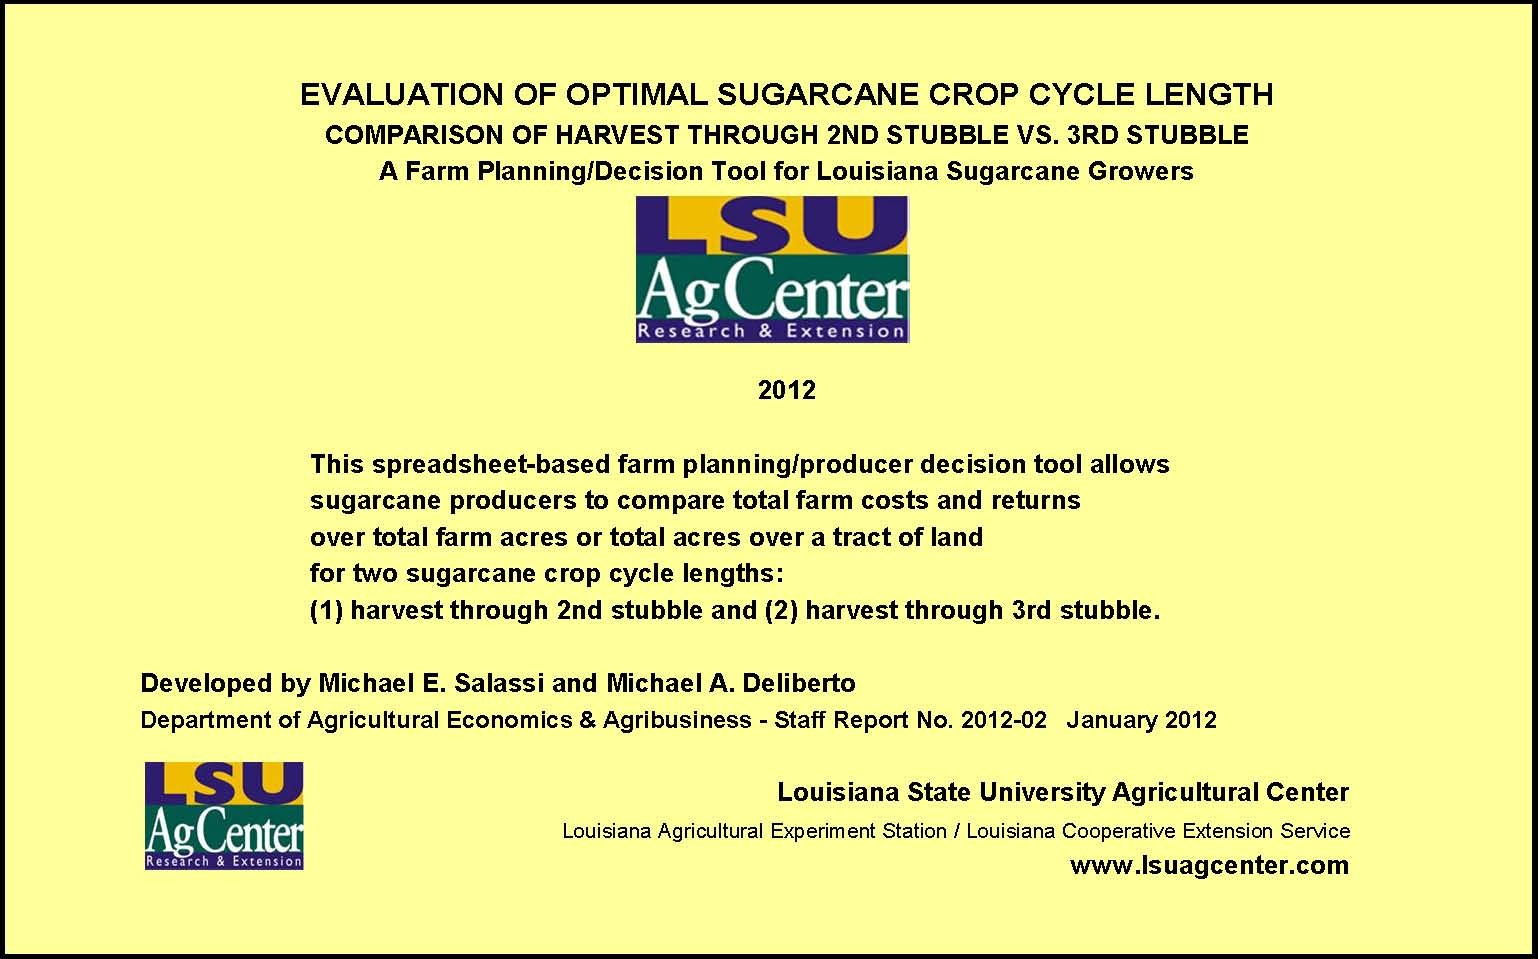 2012 Sugarcane Crop Cycle Length Evaluation Model